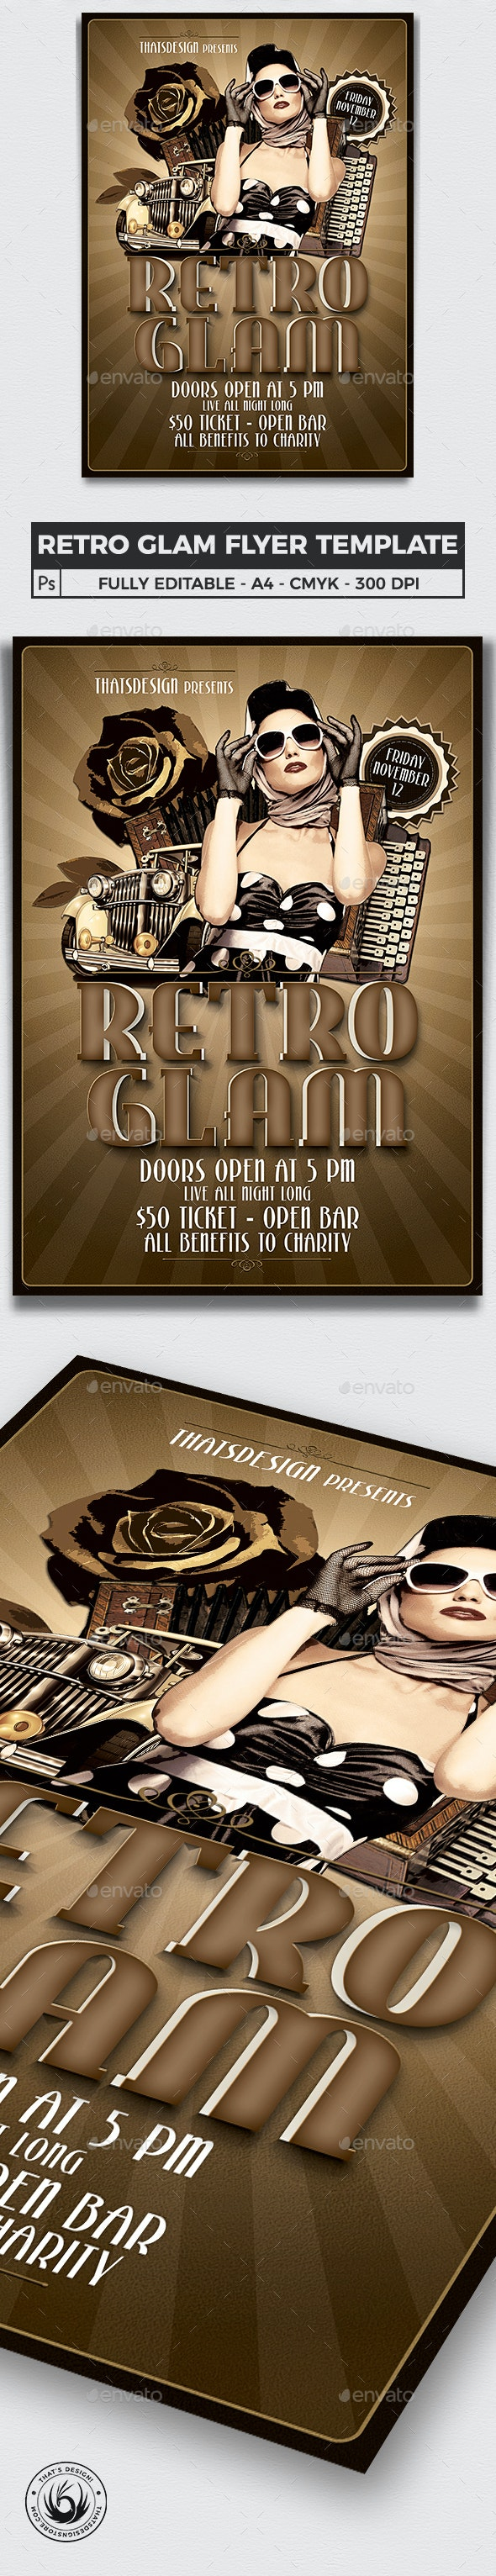 Retro Glam Flyer Template V1 - Clubs & Parties Events